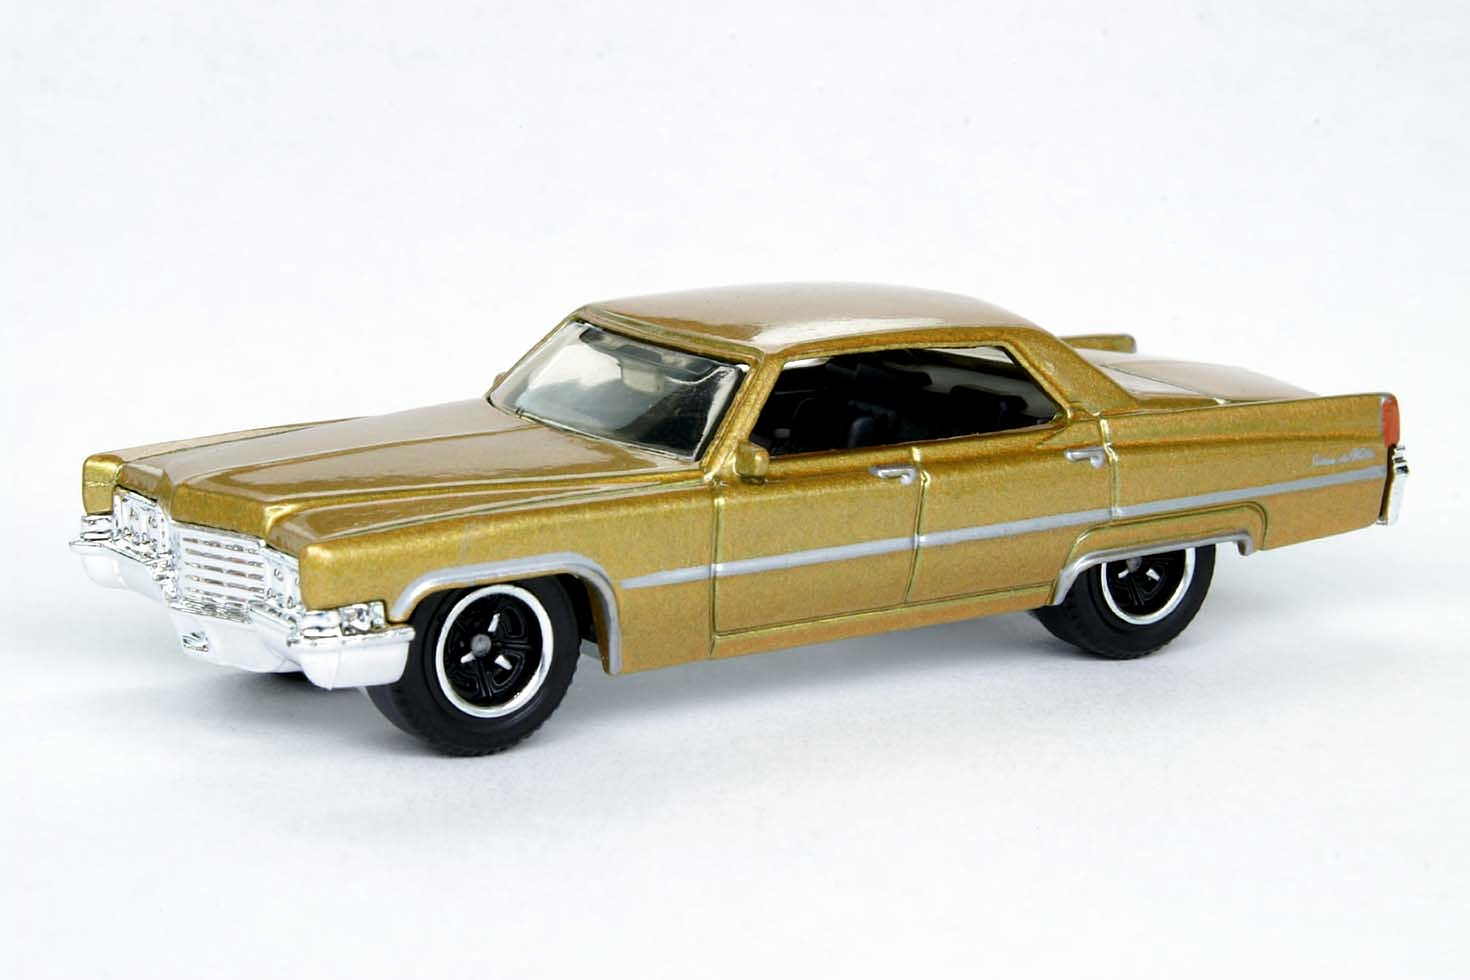 69 Cadillac Sedan DeVille | Matchbox Cars Wiki | FANDOM powered by ...